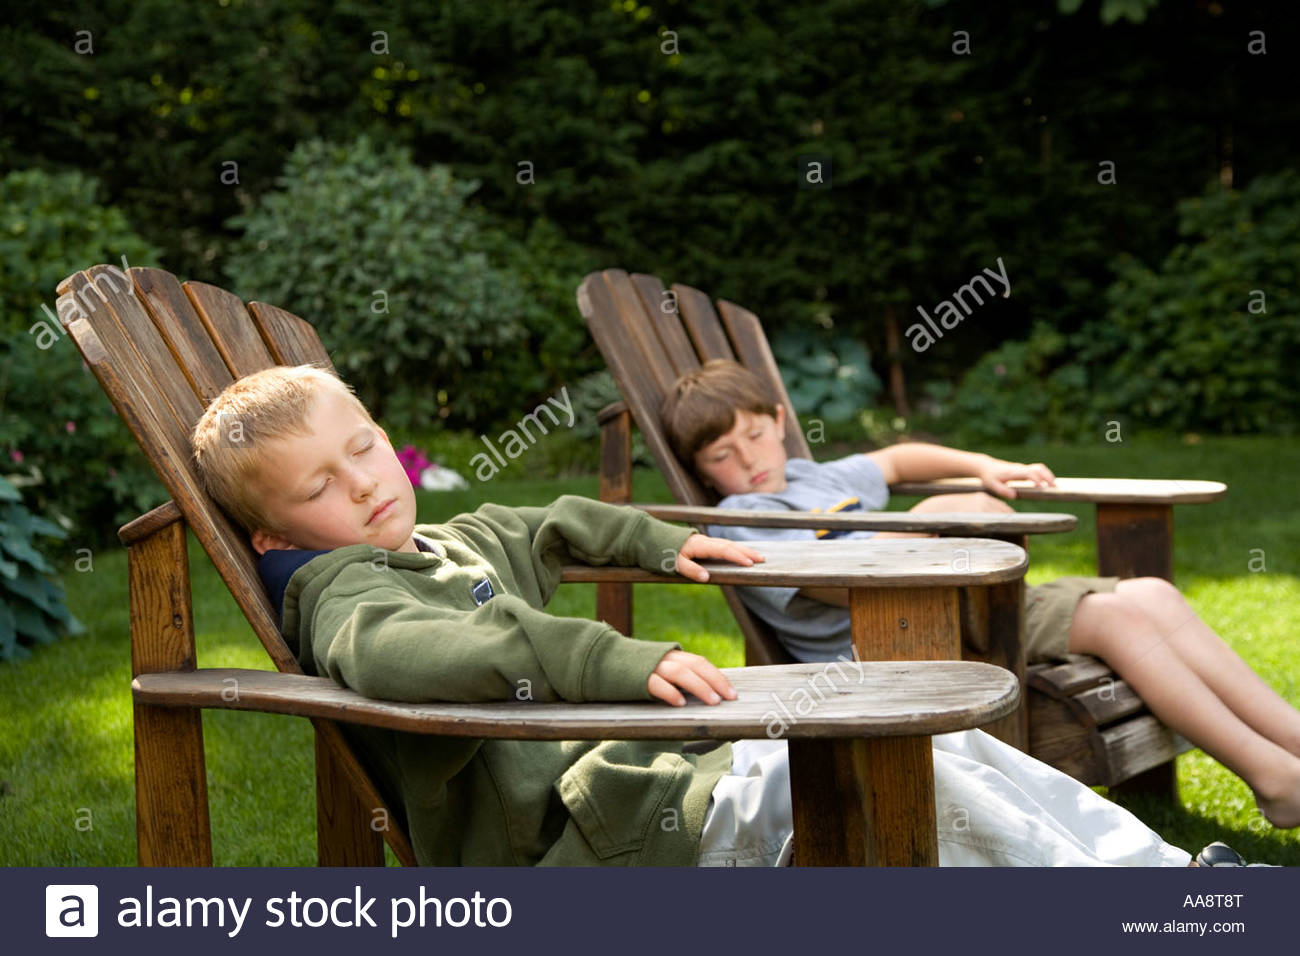 Young Boys Relaxing In Backyard Lawn Chairs Stock Photo